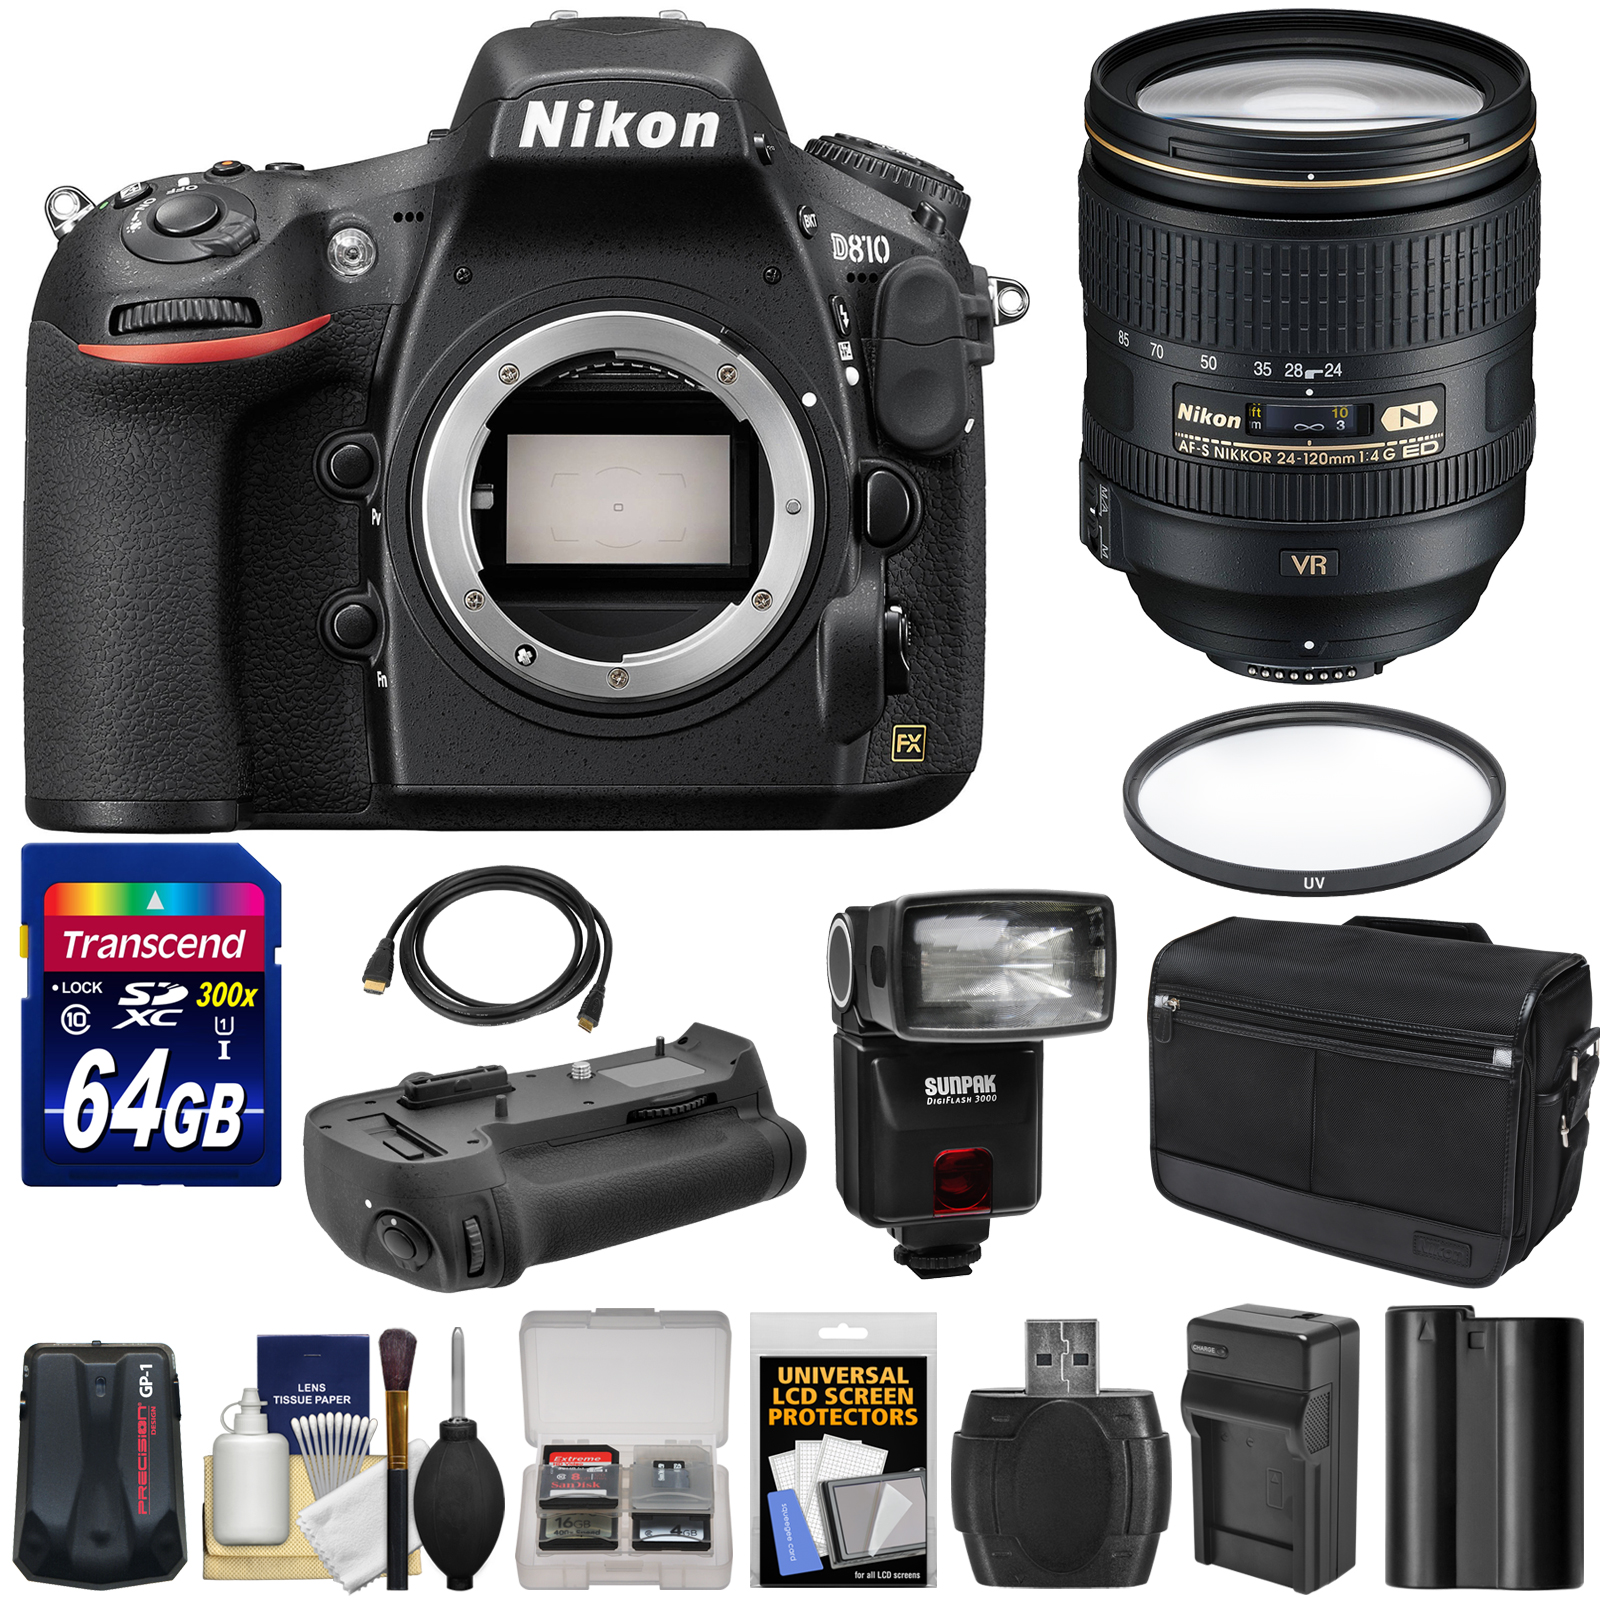 Nikon D810 Digital SLR Camera & 24-120mm f 4 VR Lens with 64GB Card + Case + Flash + Grip + Battery + GPS Unit... by Nikon